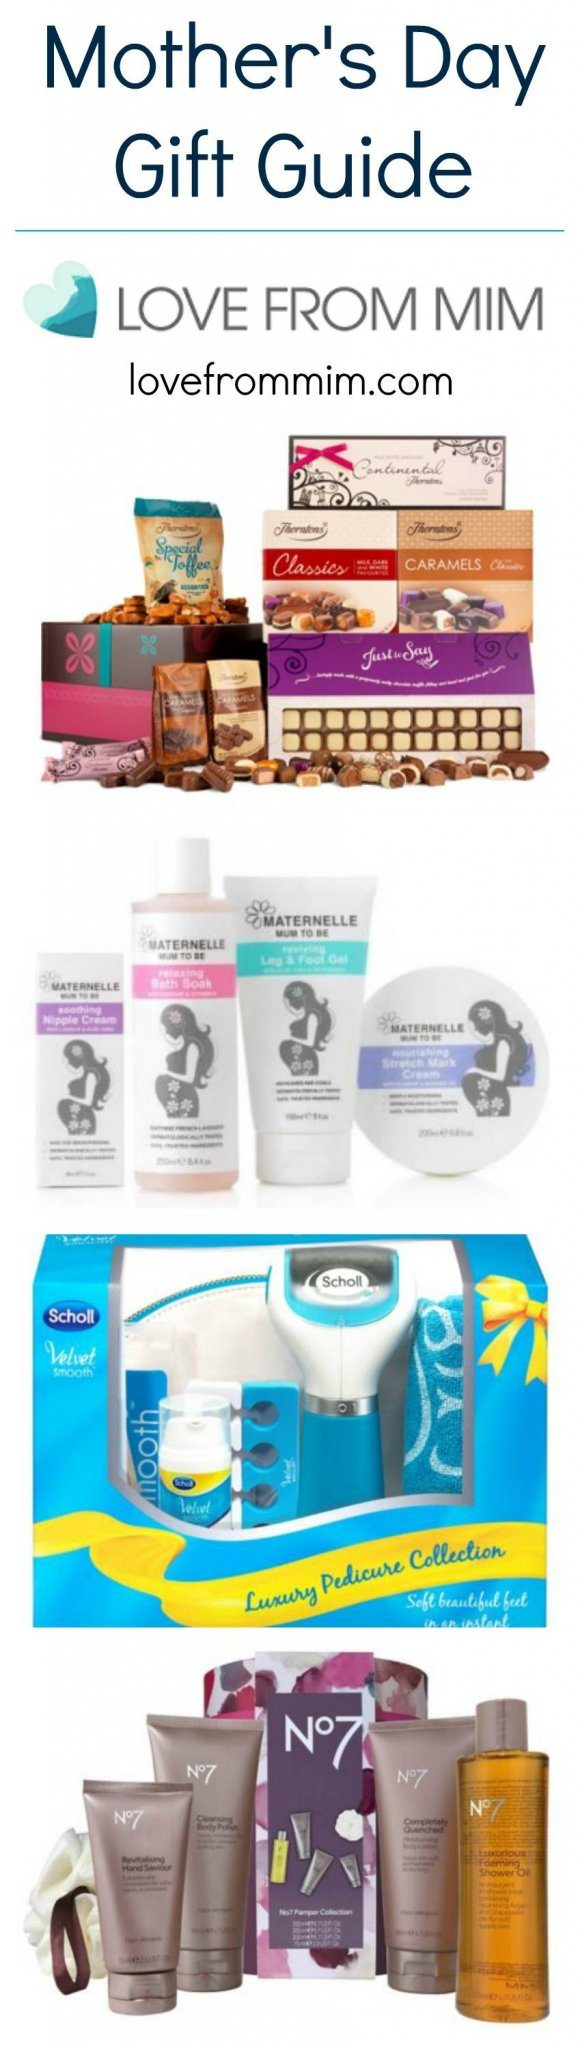 Mothers Day Gift Guide - lovefrommim.com Mother's Day, Mother's Day Gift Guide, Gift Ideas for Mums, Gift Ideas for Mother's Day Thorntons Chocolate Hamper Maternelle Mum to Be range Tesco Direct I Love Tea Mug Scholl Luxury Pedicure Collection Scholl Velvet Smooth No. 7 Skincare Set